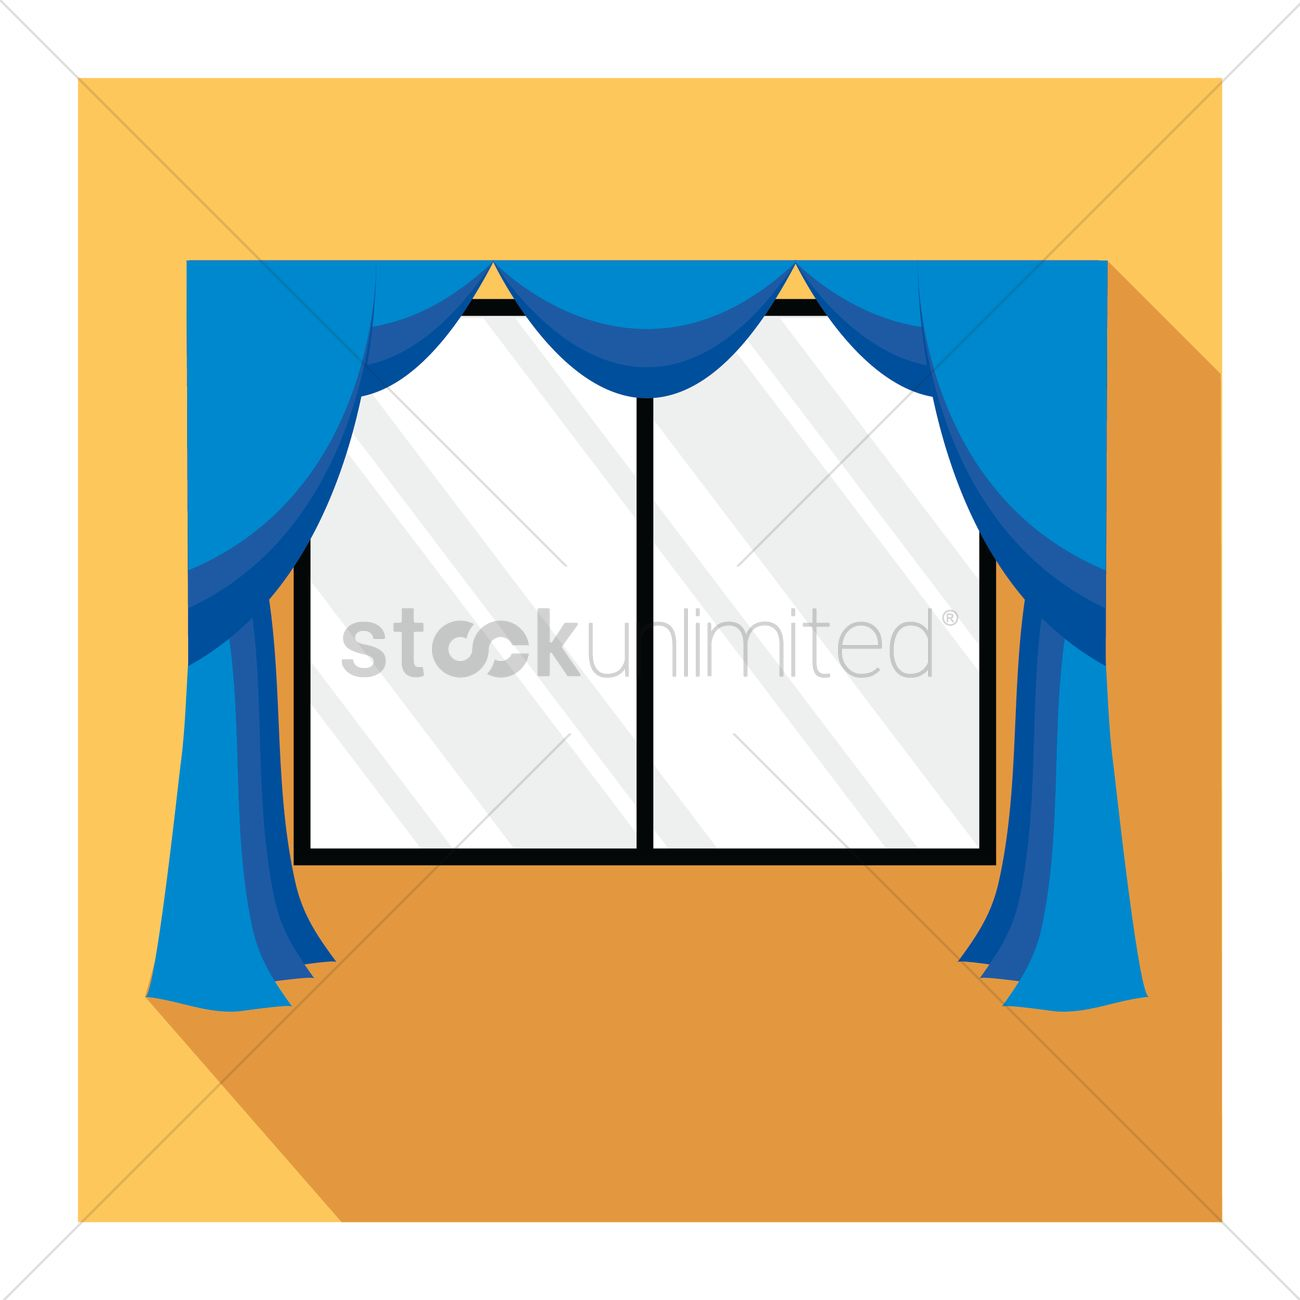 Window with curtains Vector Image - 1246771 | StockUnlimited for Window With Curtains Illustration  599kxo